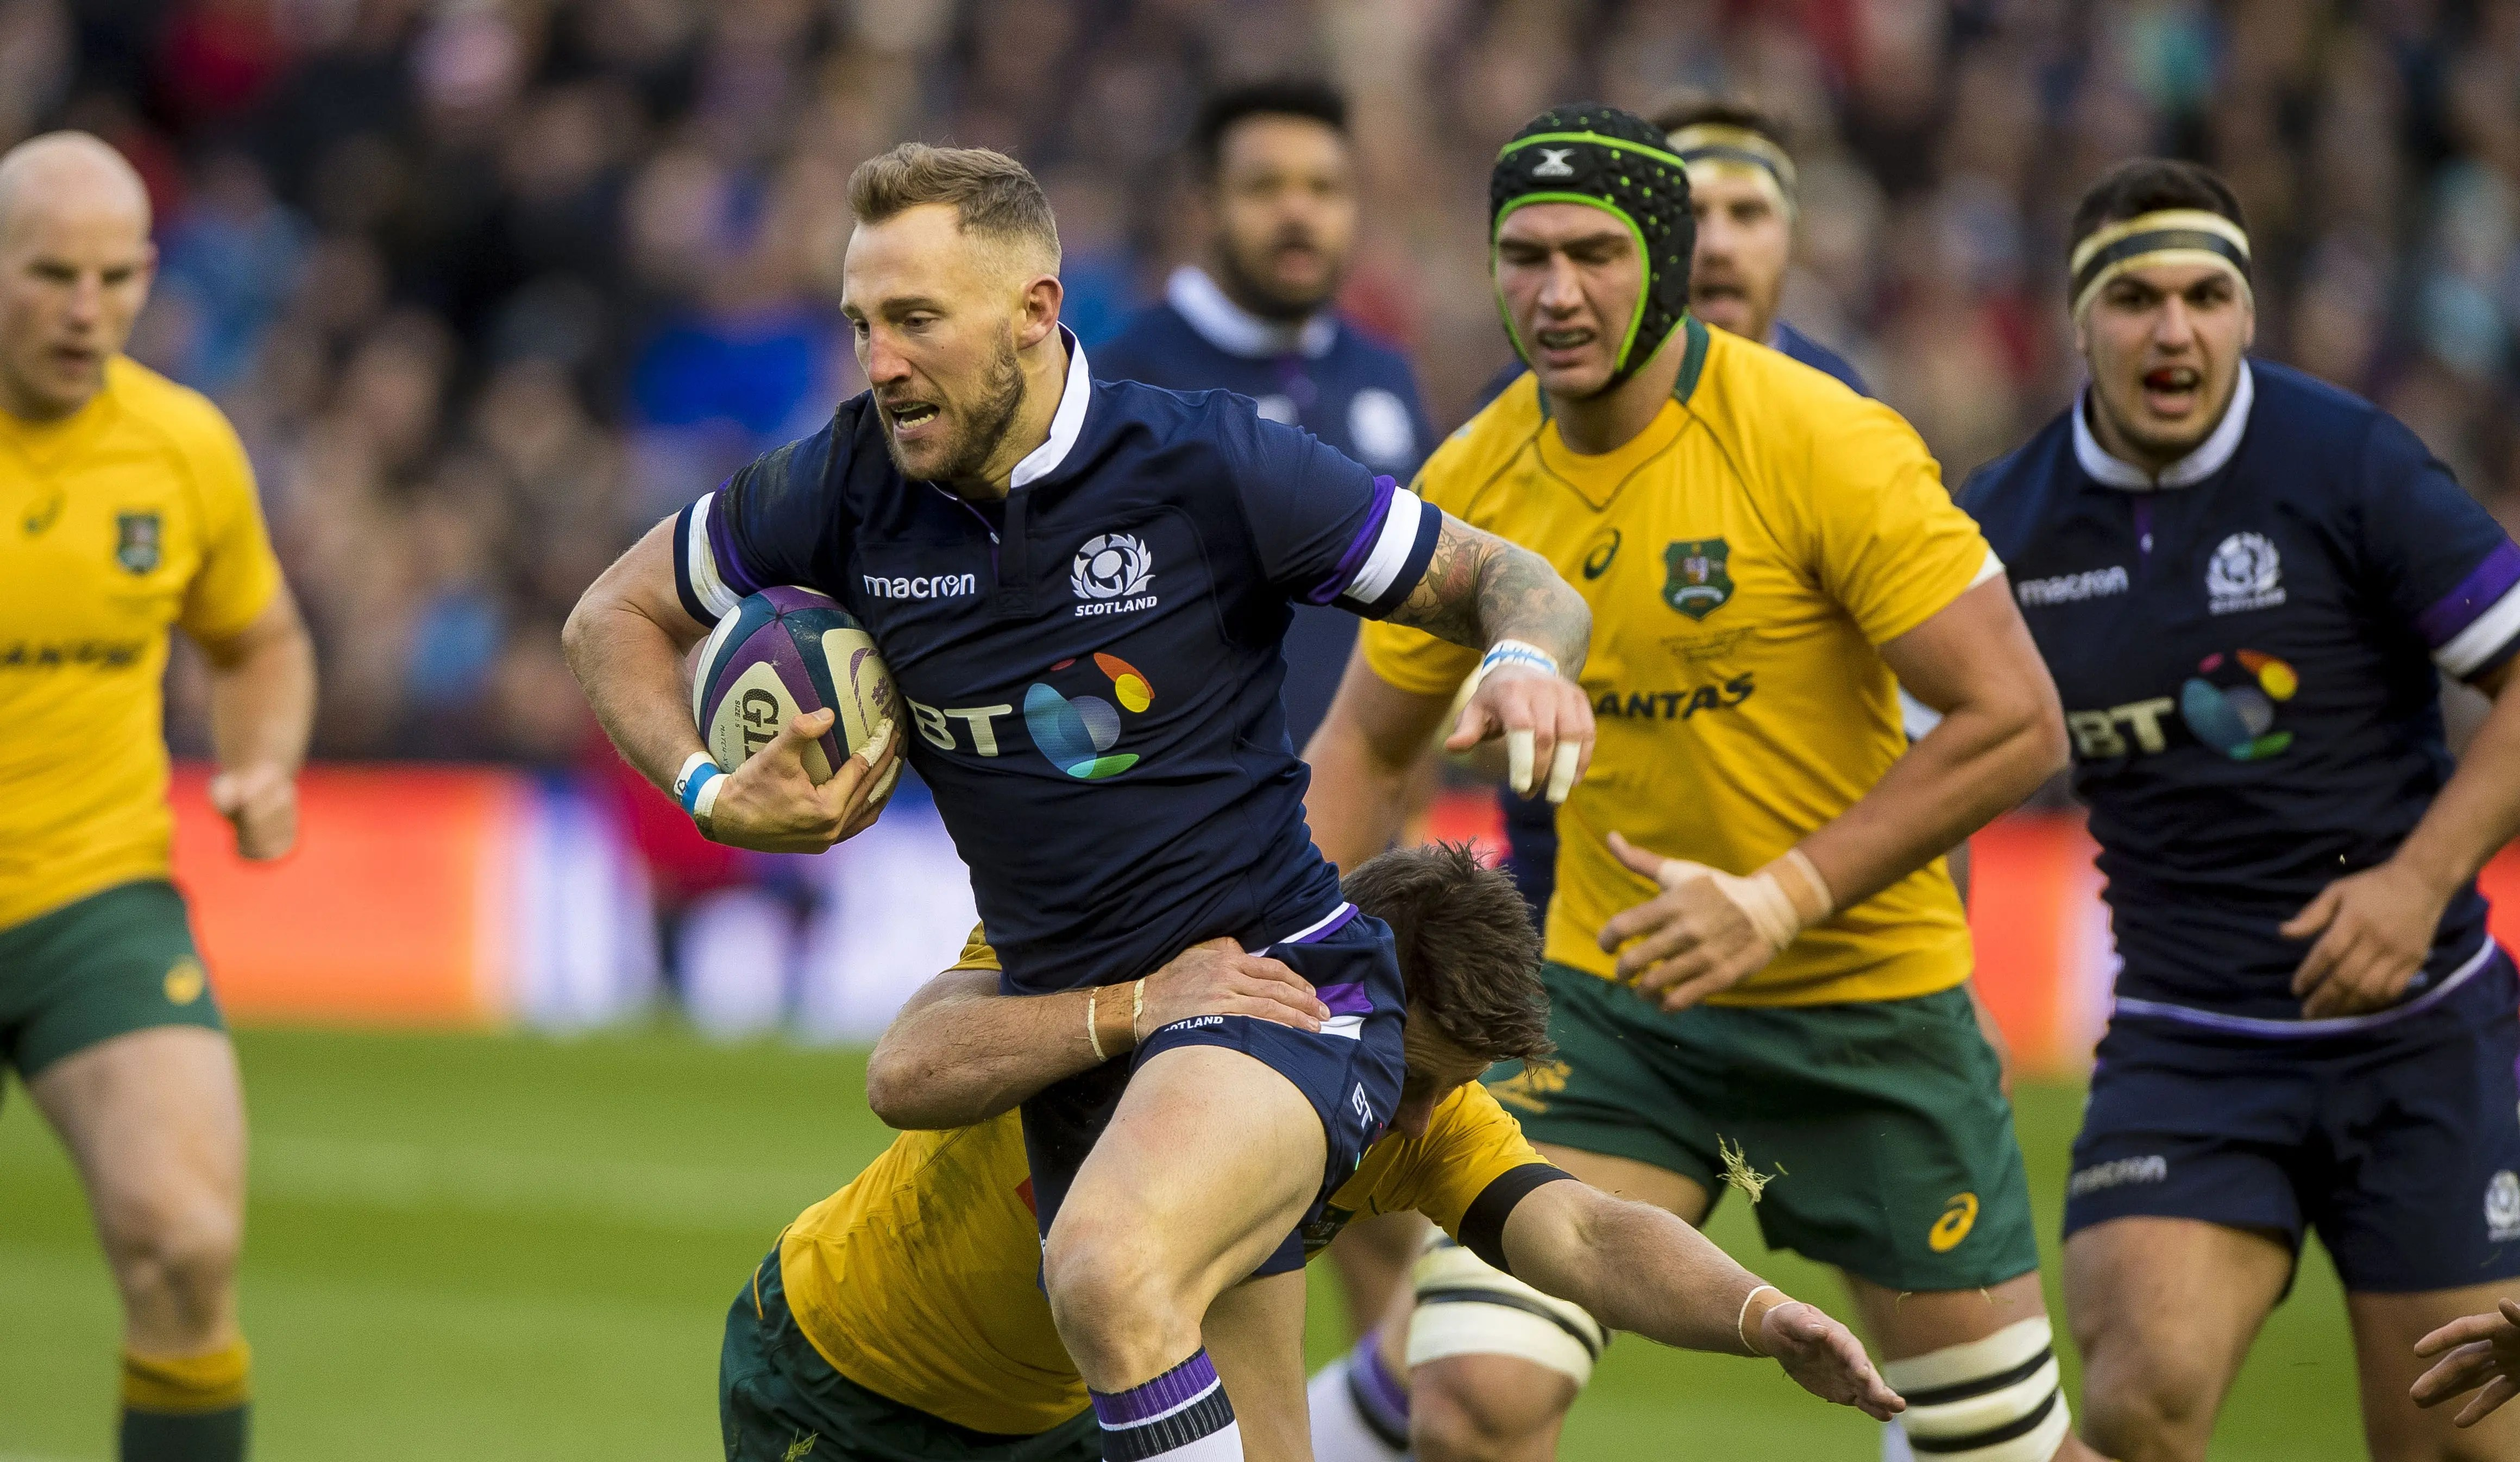 McGuigan brace lifts rampant Scotland to record win over Australia